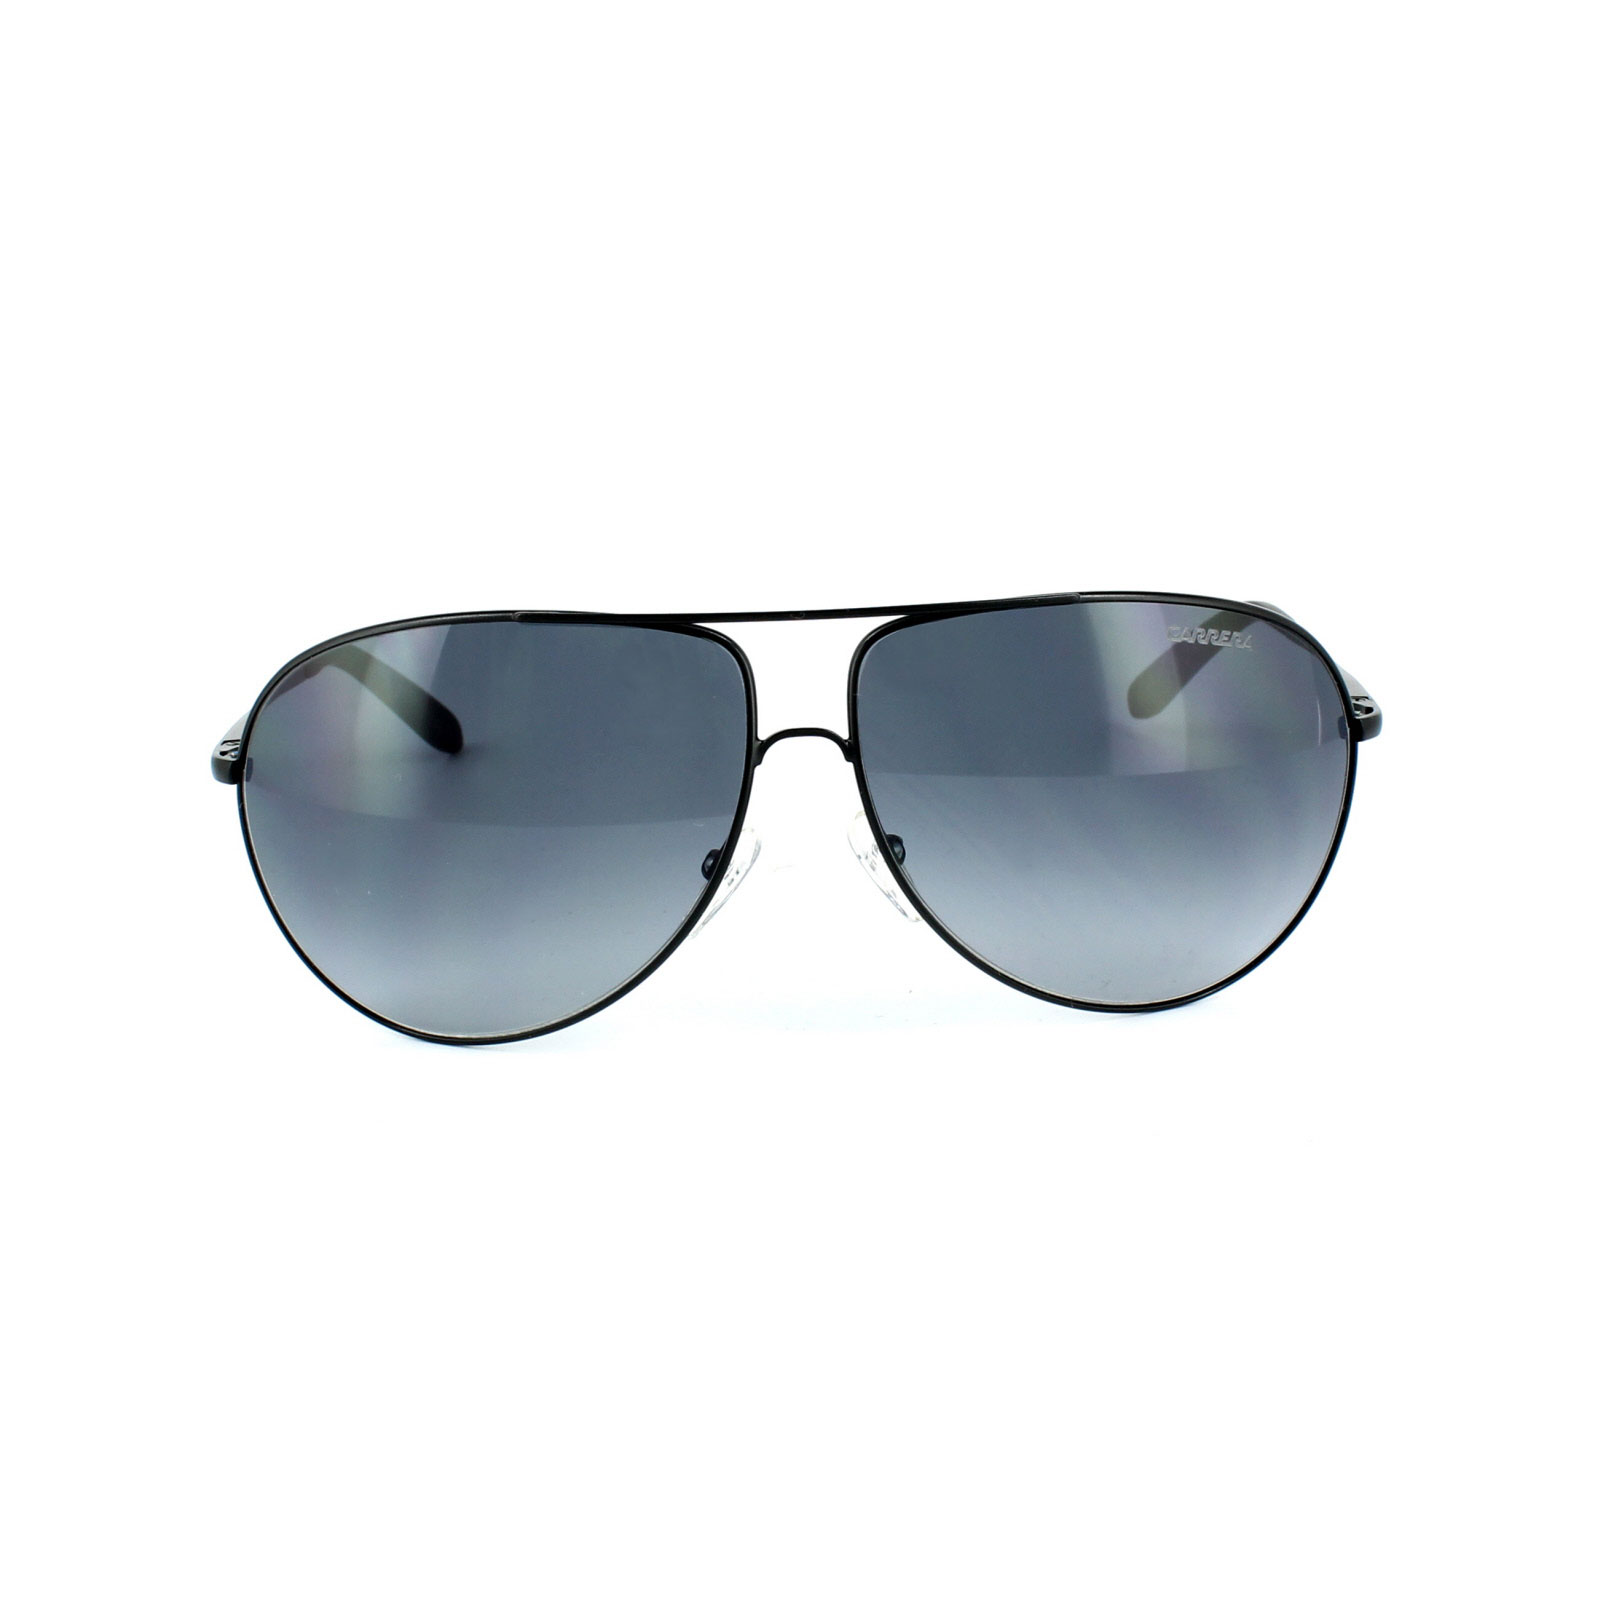 Carrera New Gipsy 003 HD bqJWpu6eP